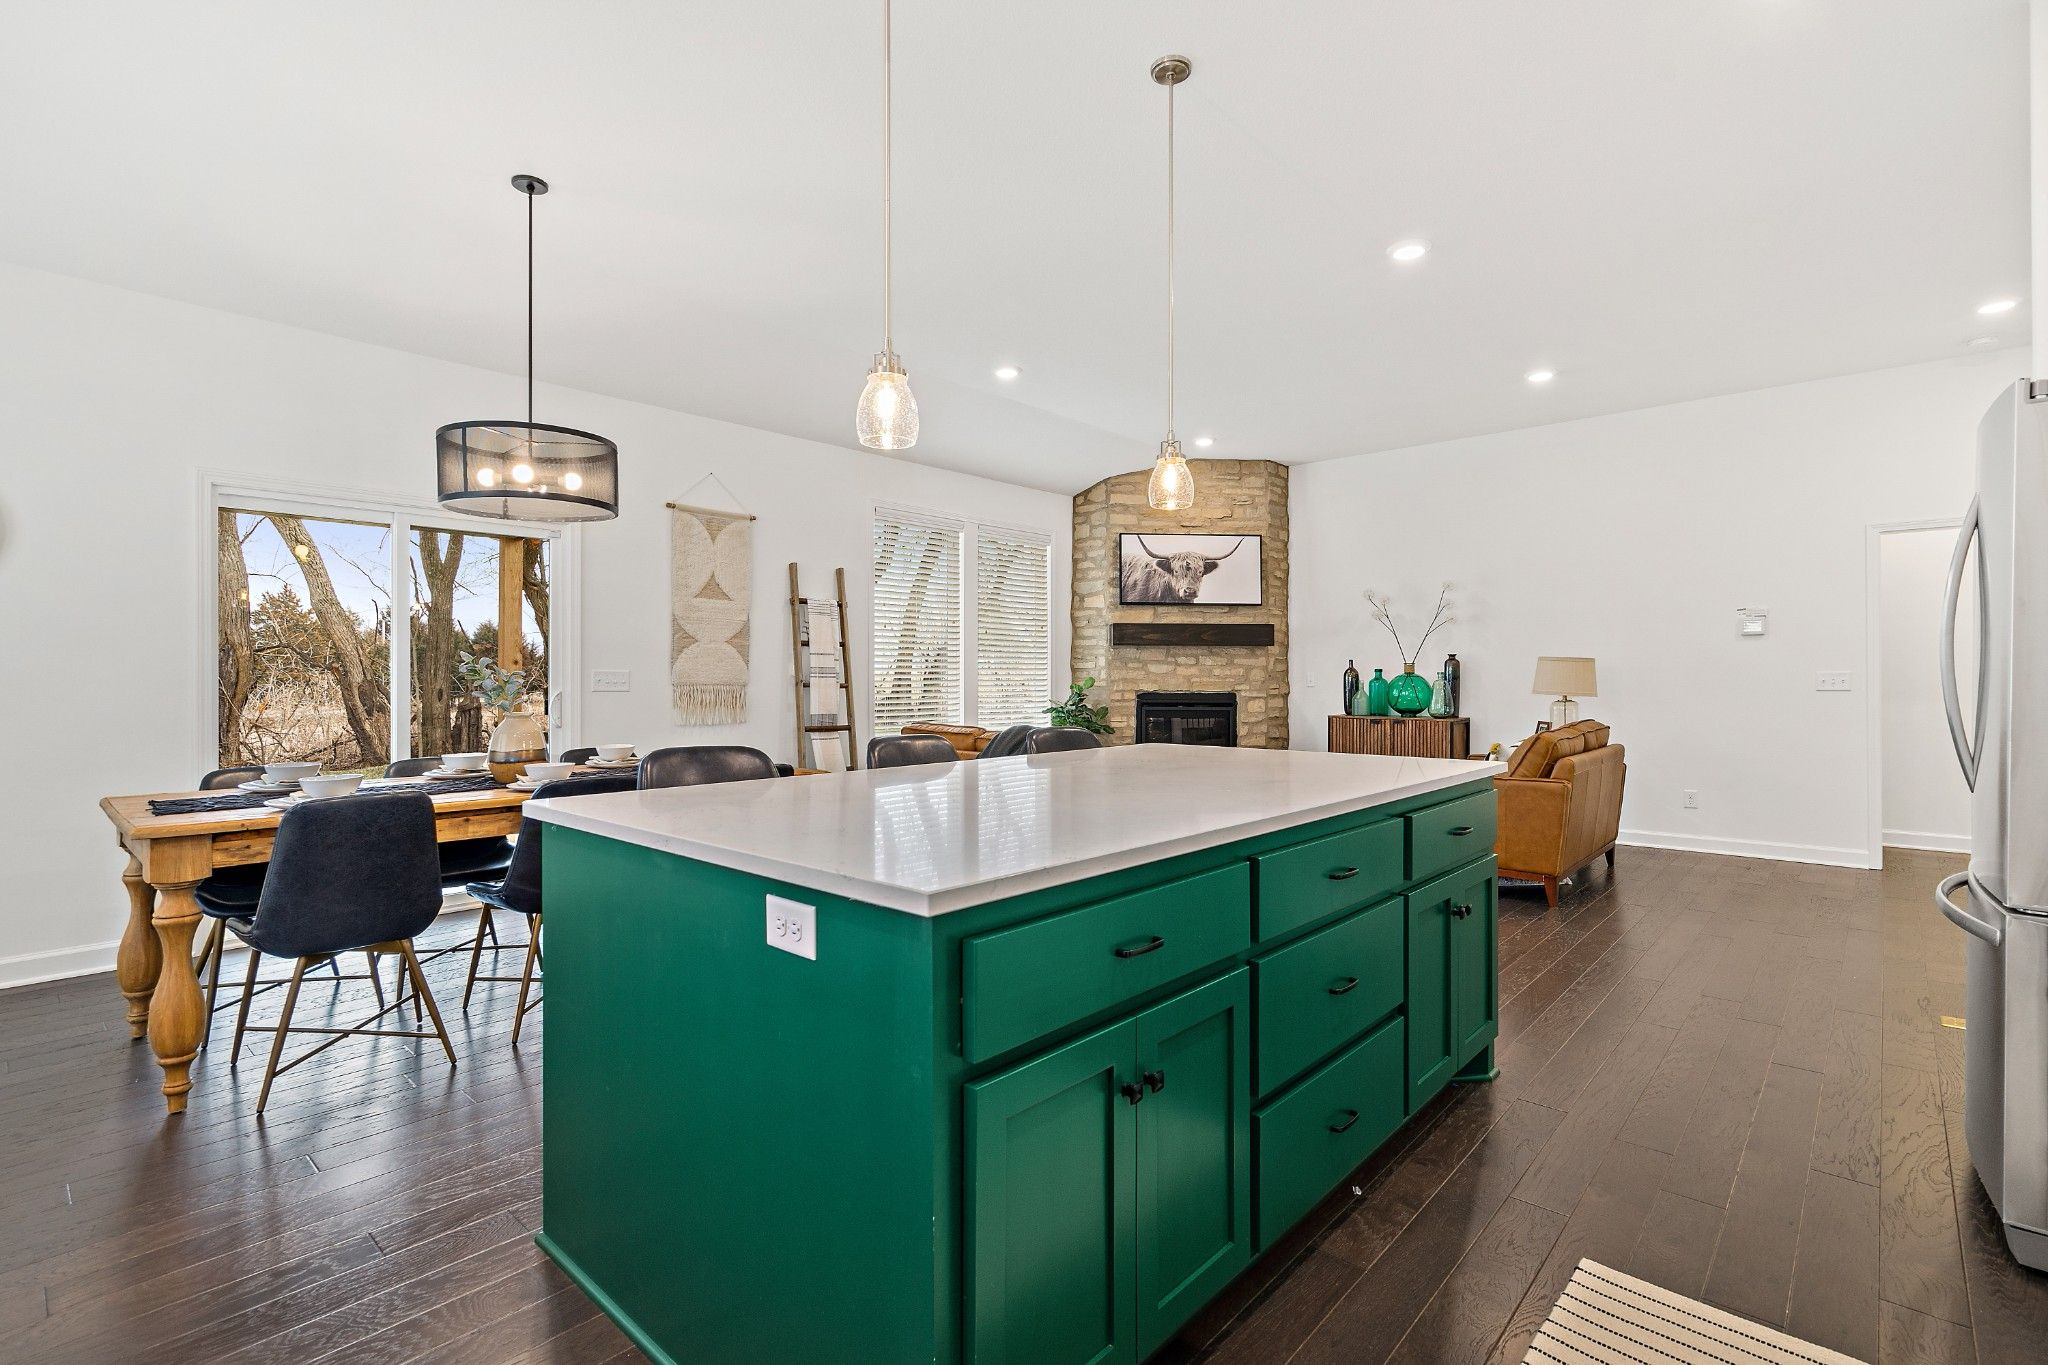 Kitchen featured in the Carbondale - IA By Summit Homes in Des Moines, IA